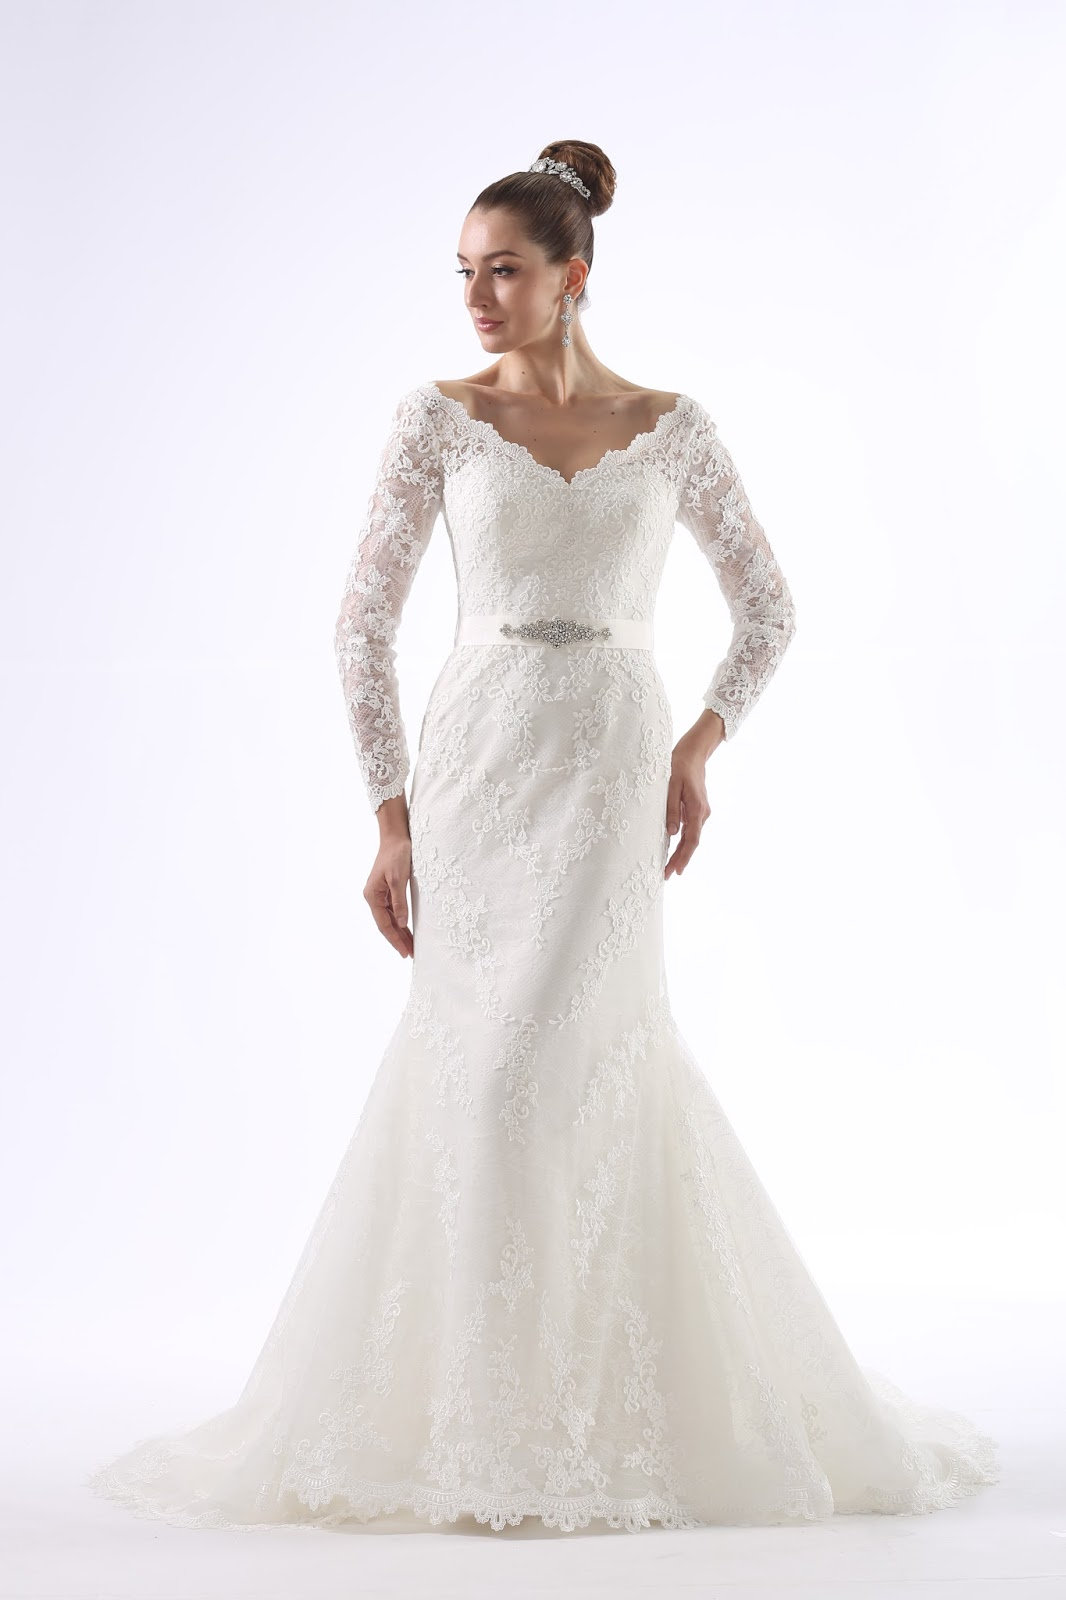 Wedding Dresses For The Mature Bride : Wedding dresses for mature brides mother distracted